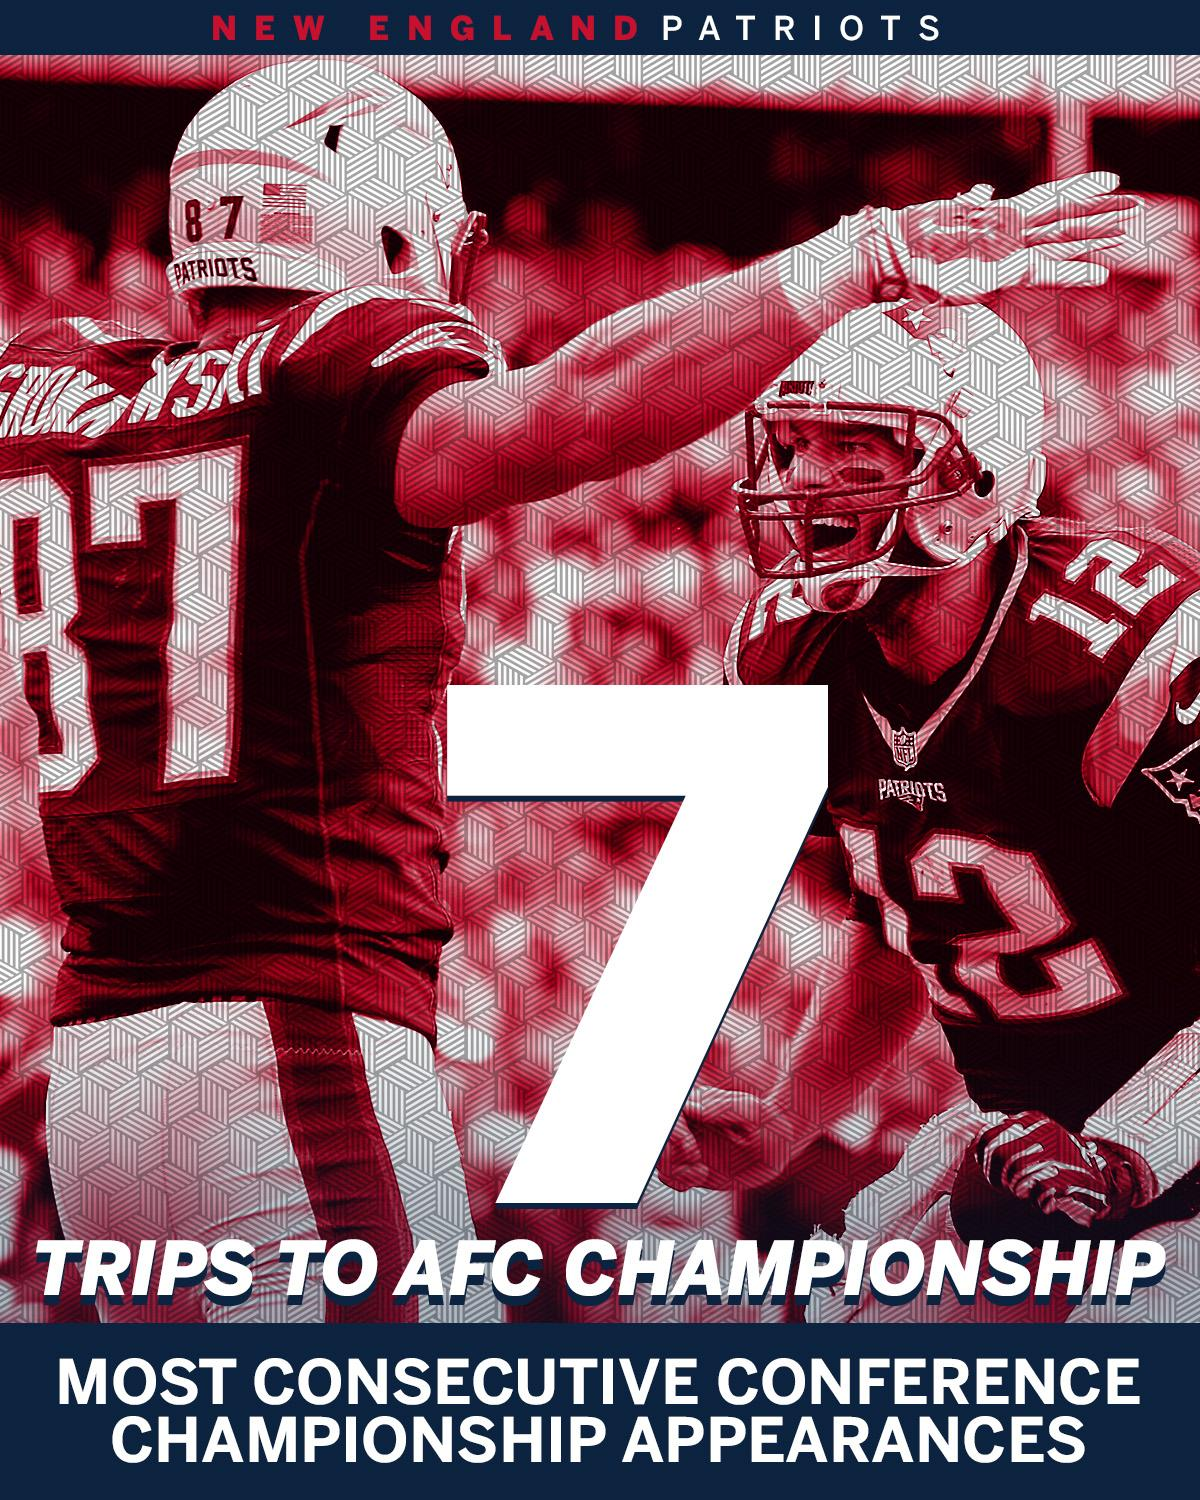 The Patriots are headed to their 7th straight AFC Championship game. https://t.co/pQxhz9HDmr